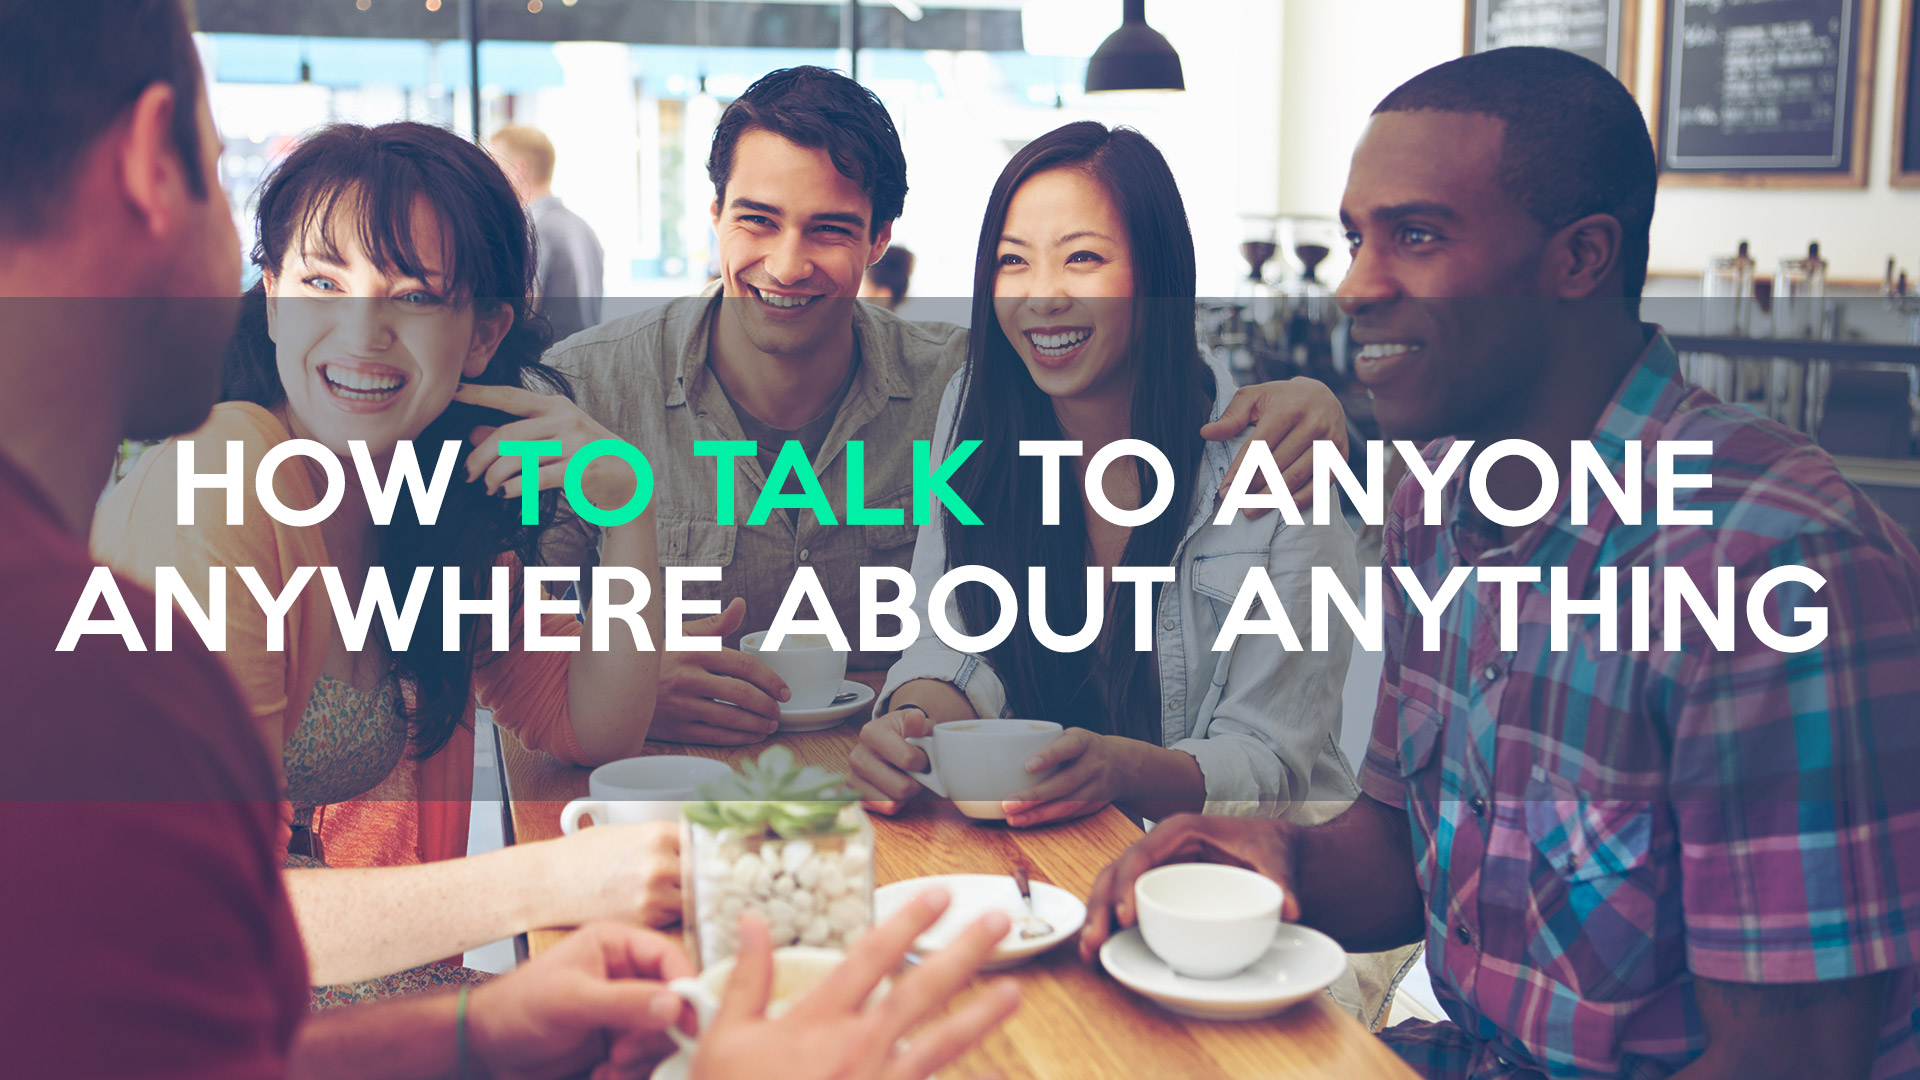 How-to-Talk-to-Anyone-Anywhere-About-Anything.jpg